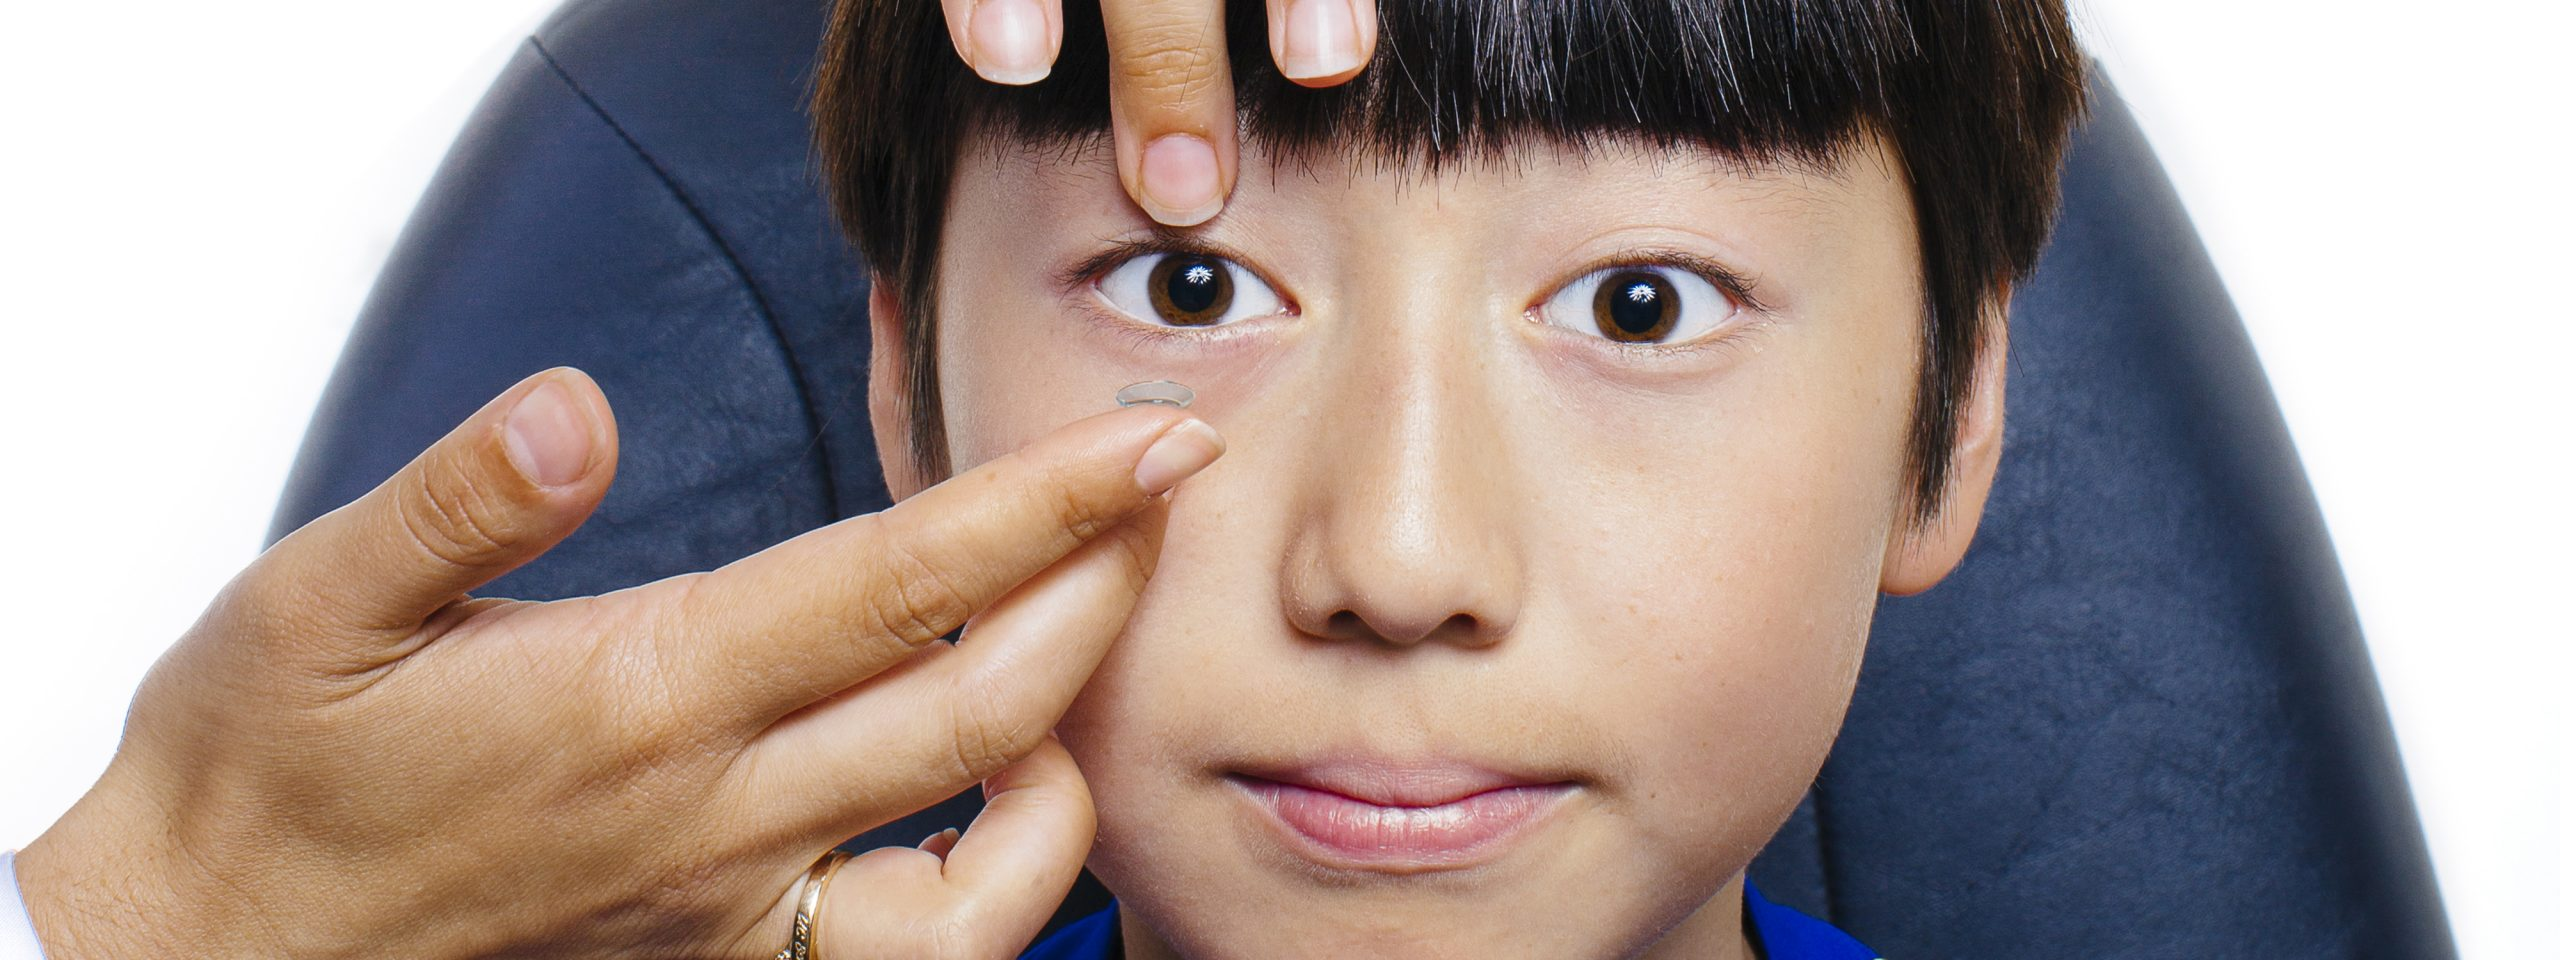 young male patient getting fitted for contact lens.